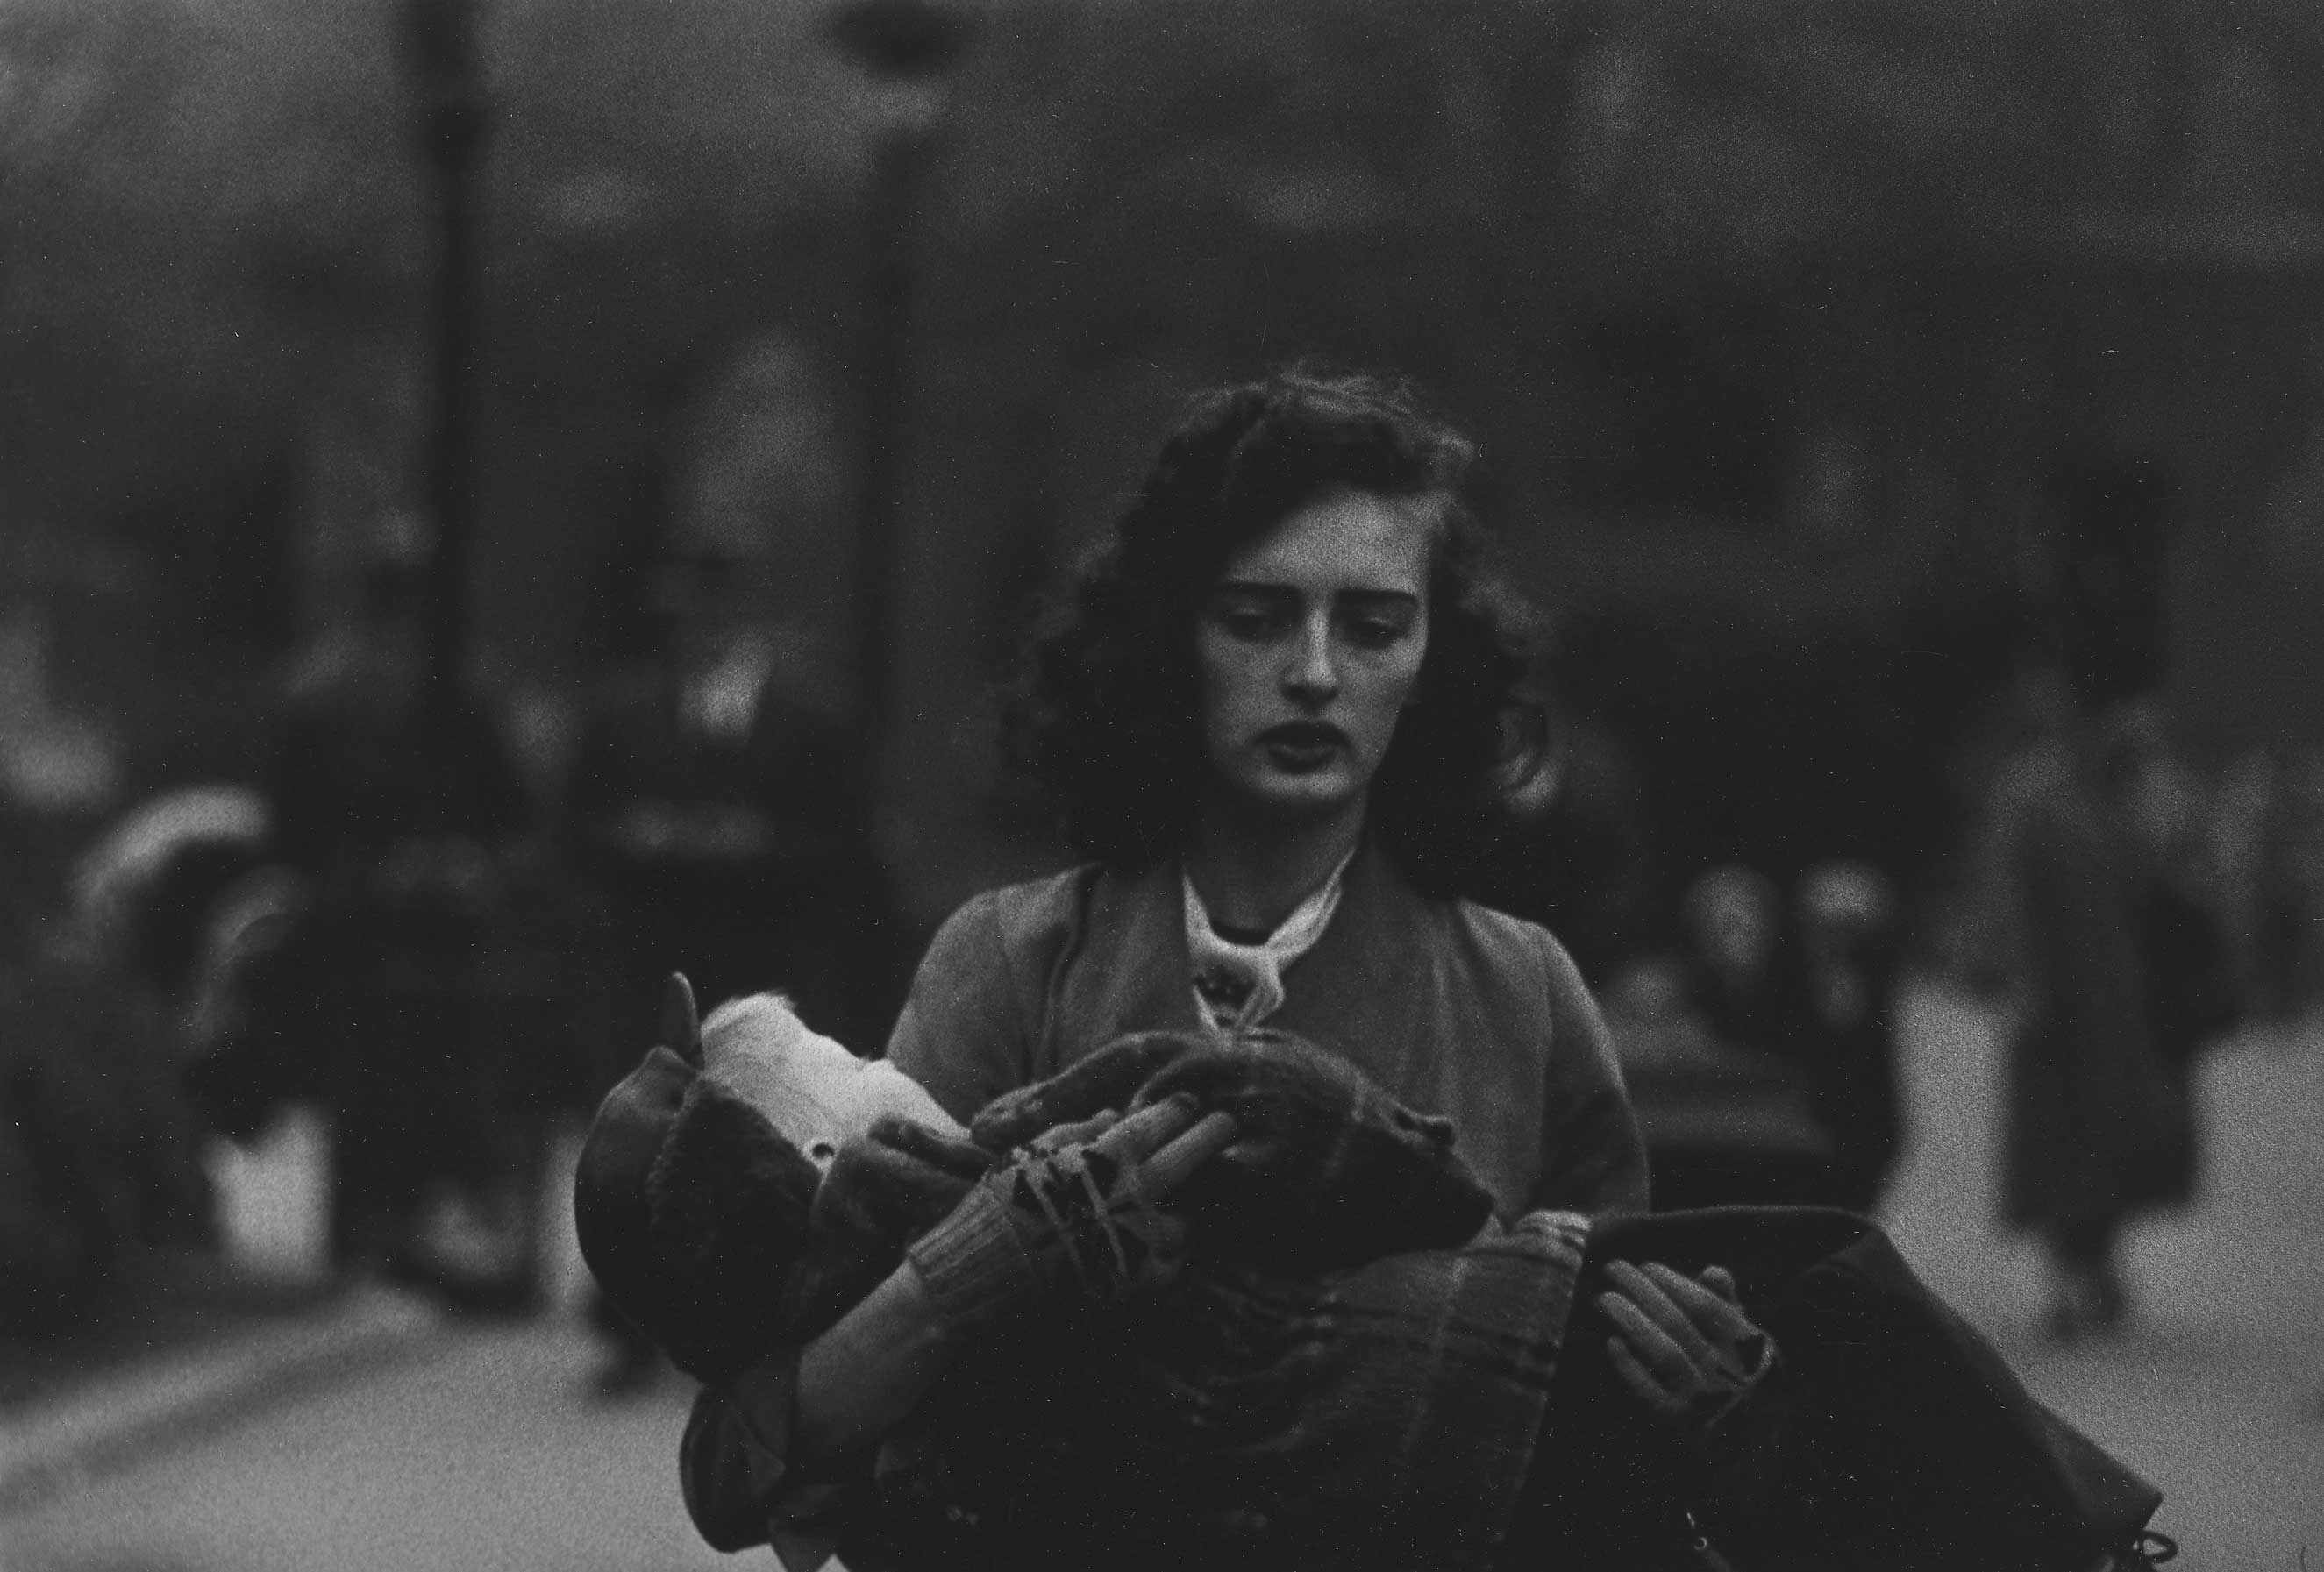 Woman carrying a child in Central Park, N.Y.C., 1956                               Tod Pappageorge: I knew a good bit of this early work, so I can't say that I was really surprised by the pictures I hadn't seen before, apart from their number, and by how vividly they confirmed just how all-engrossing, and defined, Diane's photographic project was right from the beginning. That said, I found myself generally most moved by her pictures of, what I would call, members of her own very upper middle-class world (a world she was at such pains to reject). All women, I think. For example, a mother (I'd guess) moving toward Diane's camera carrying a child in Central Park.